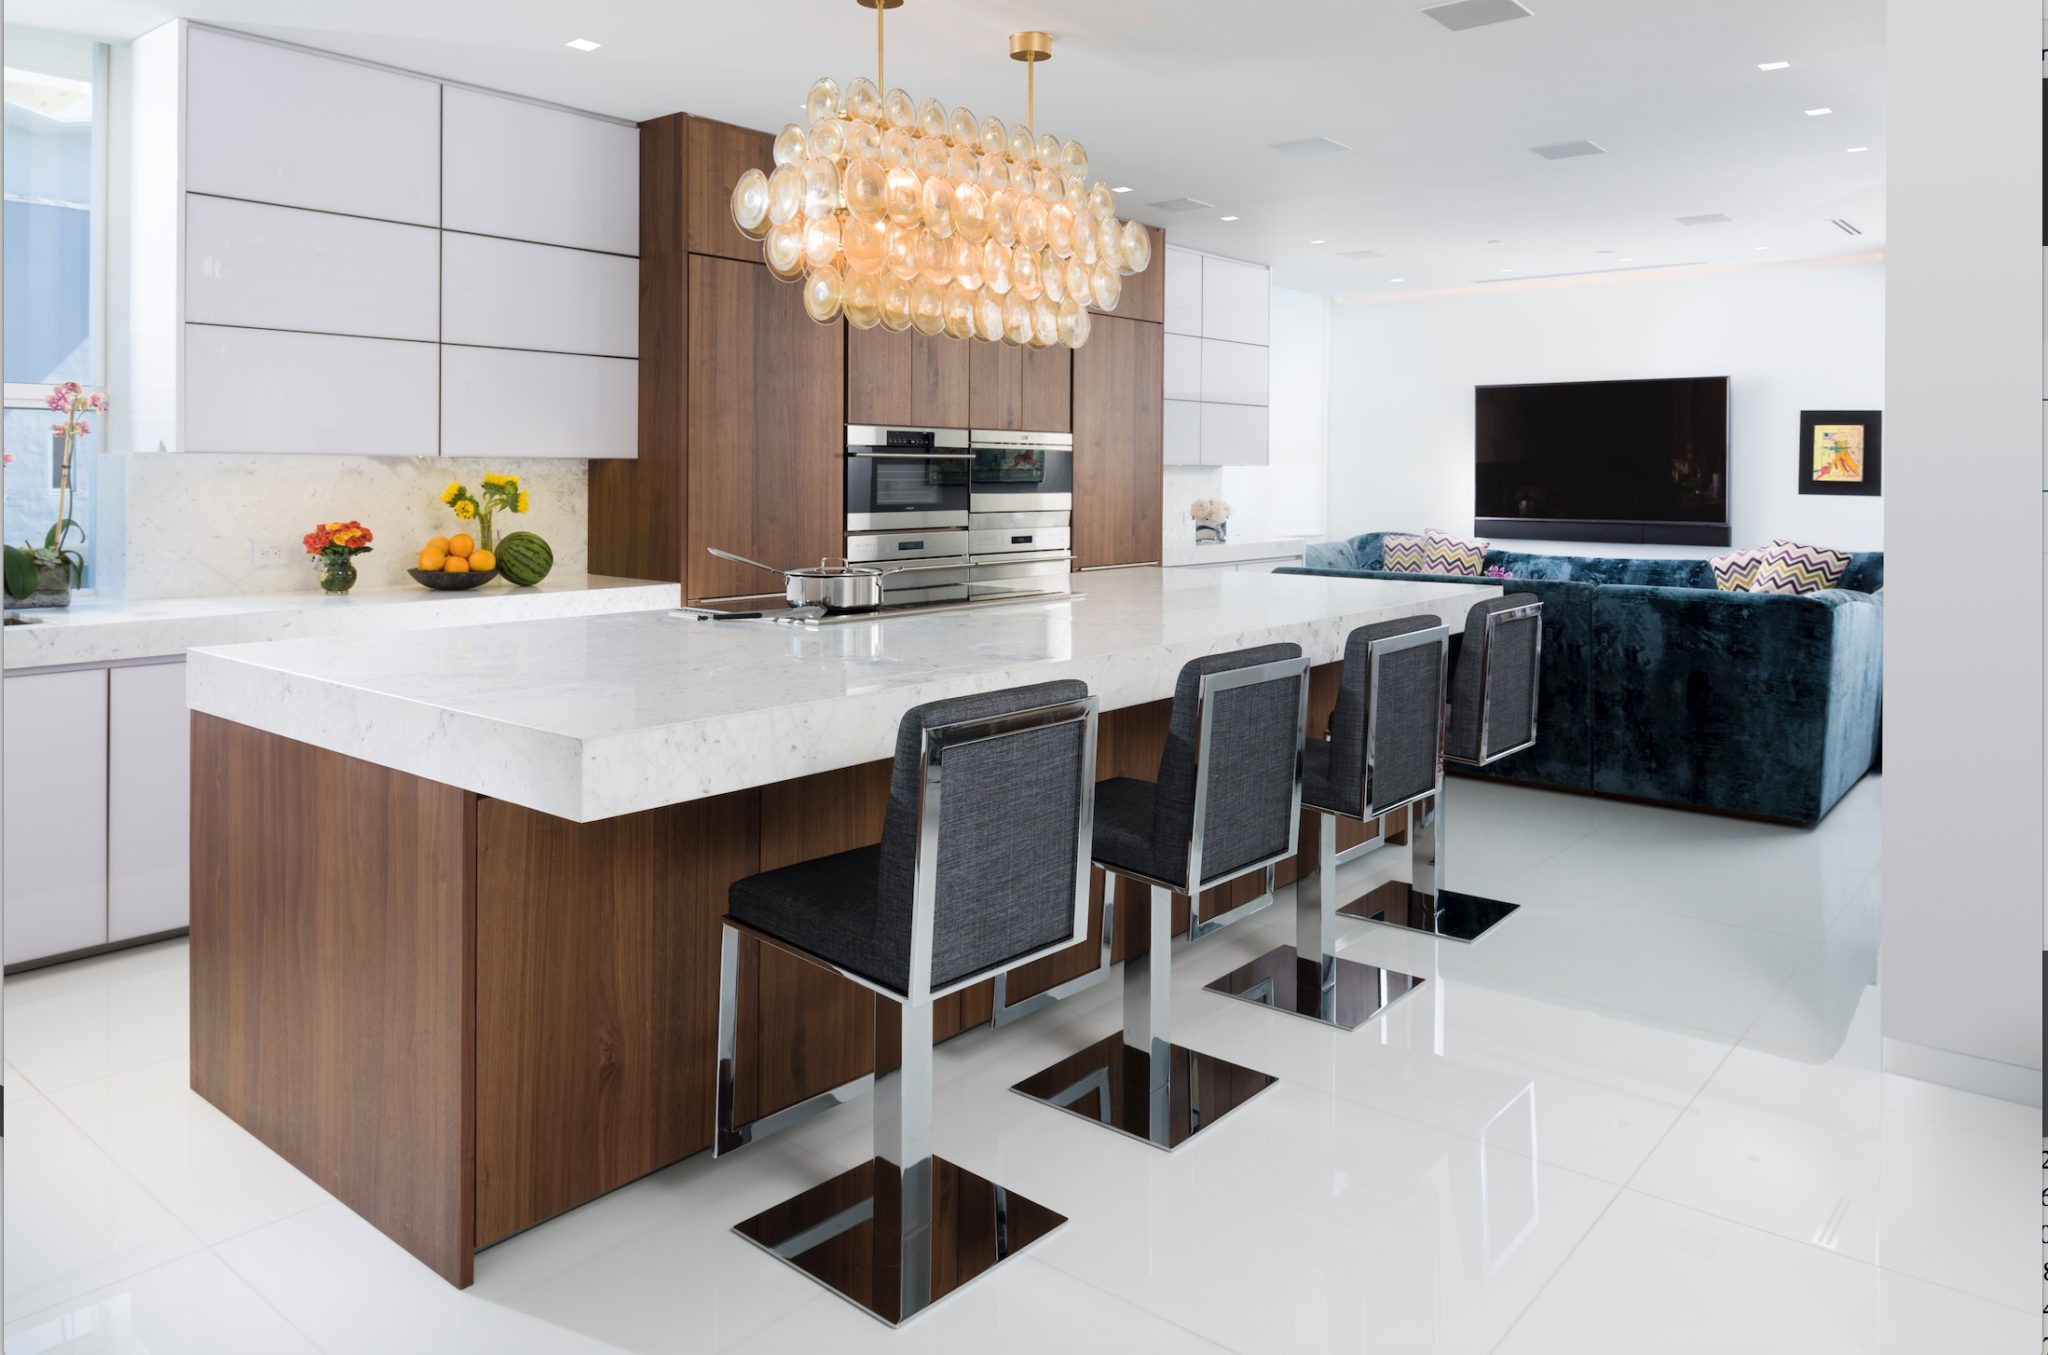 Penthouse oceanfront penthouse kitchen and family room by Brown Davis Interiors, Inc.